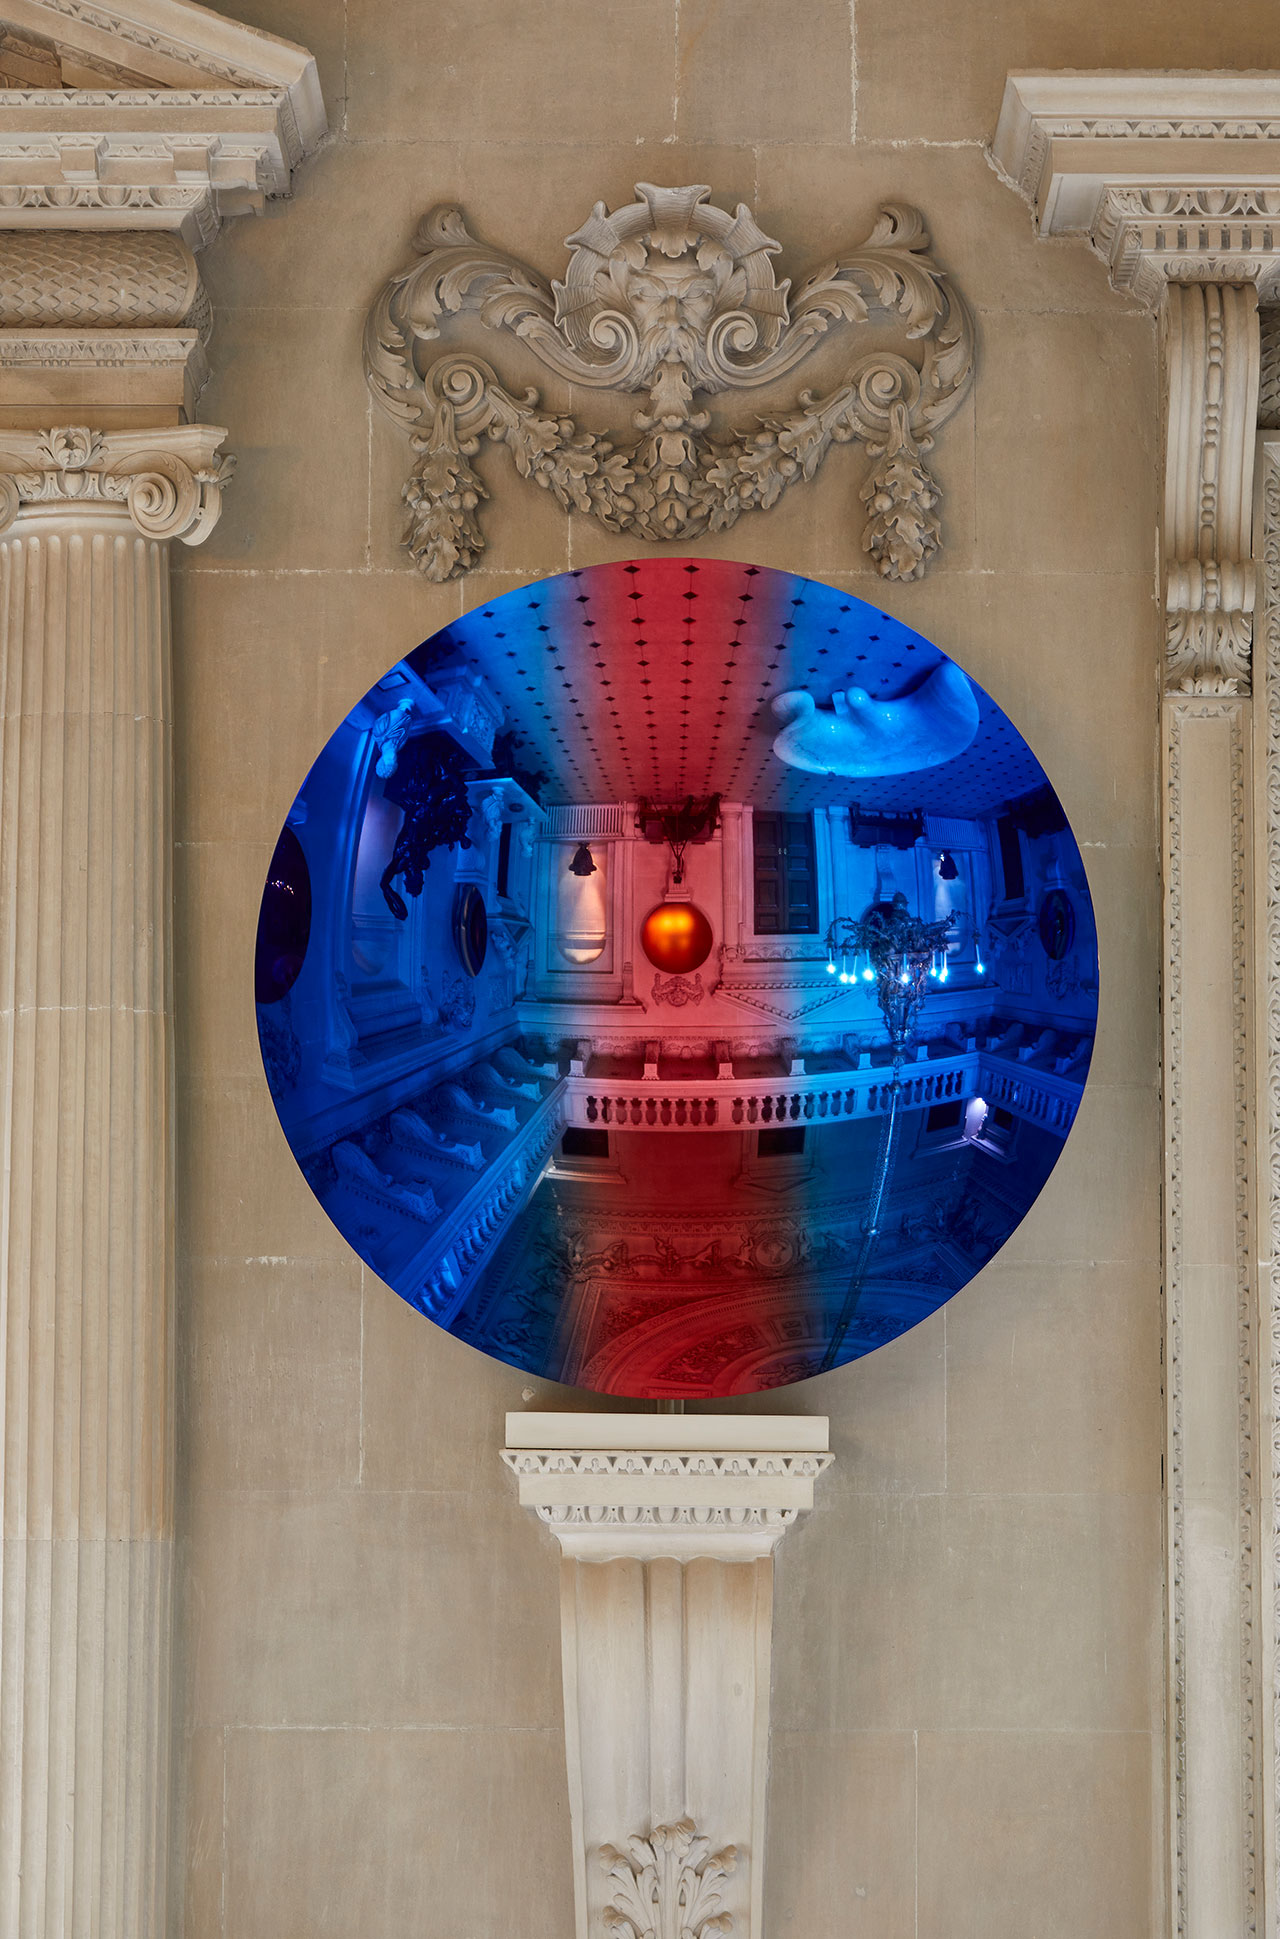 Exhibition view, Anish Kapoor at Houghton Hall. © Anish Kapoor. All rights reserved DACS, 2020. Photo by Pete Huggins. Featured: Cobalt Blue to Apple and Magenta mix 2, 2018. Courtesy the artist and Lisson Gallery.